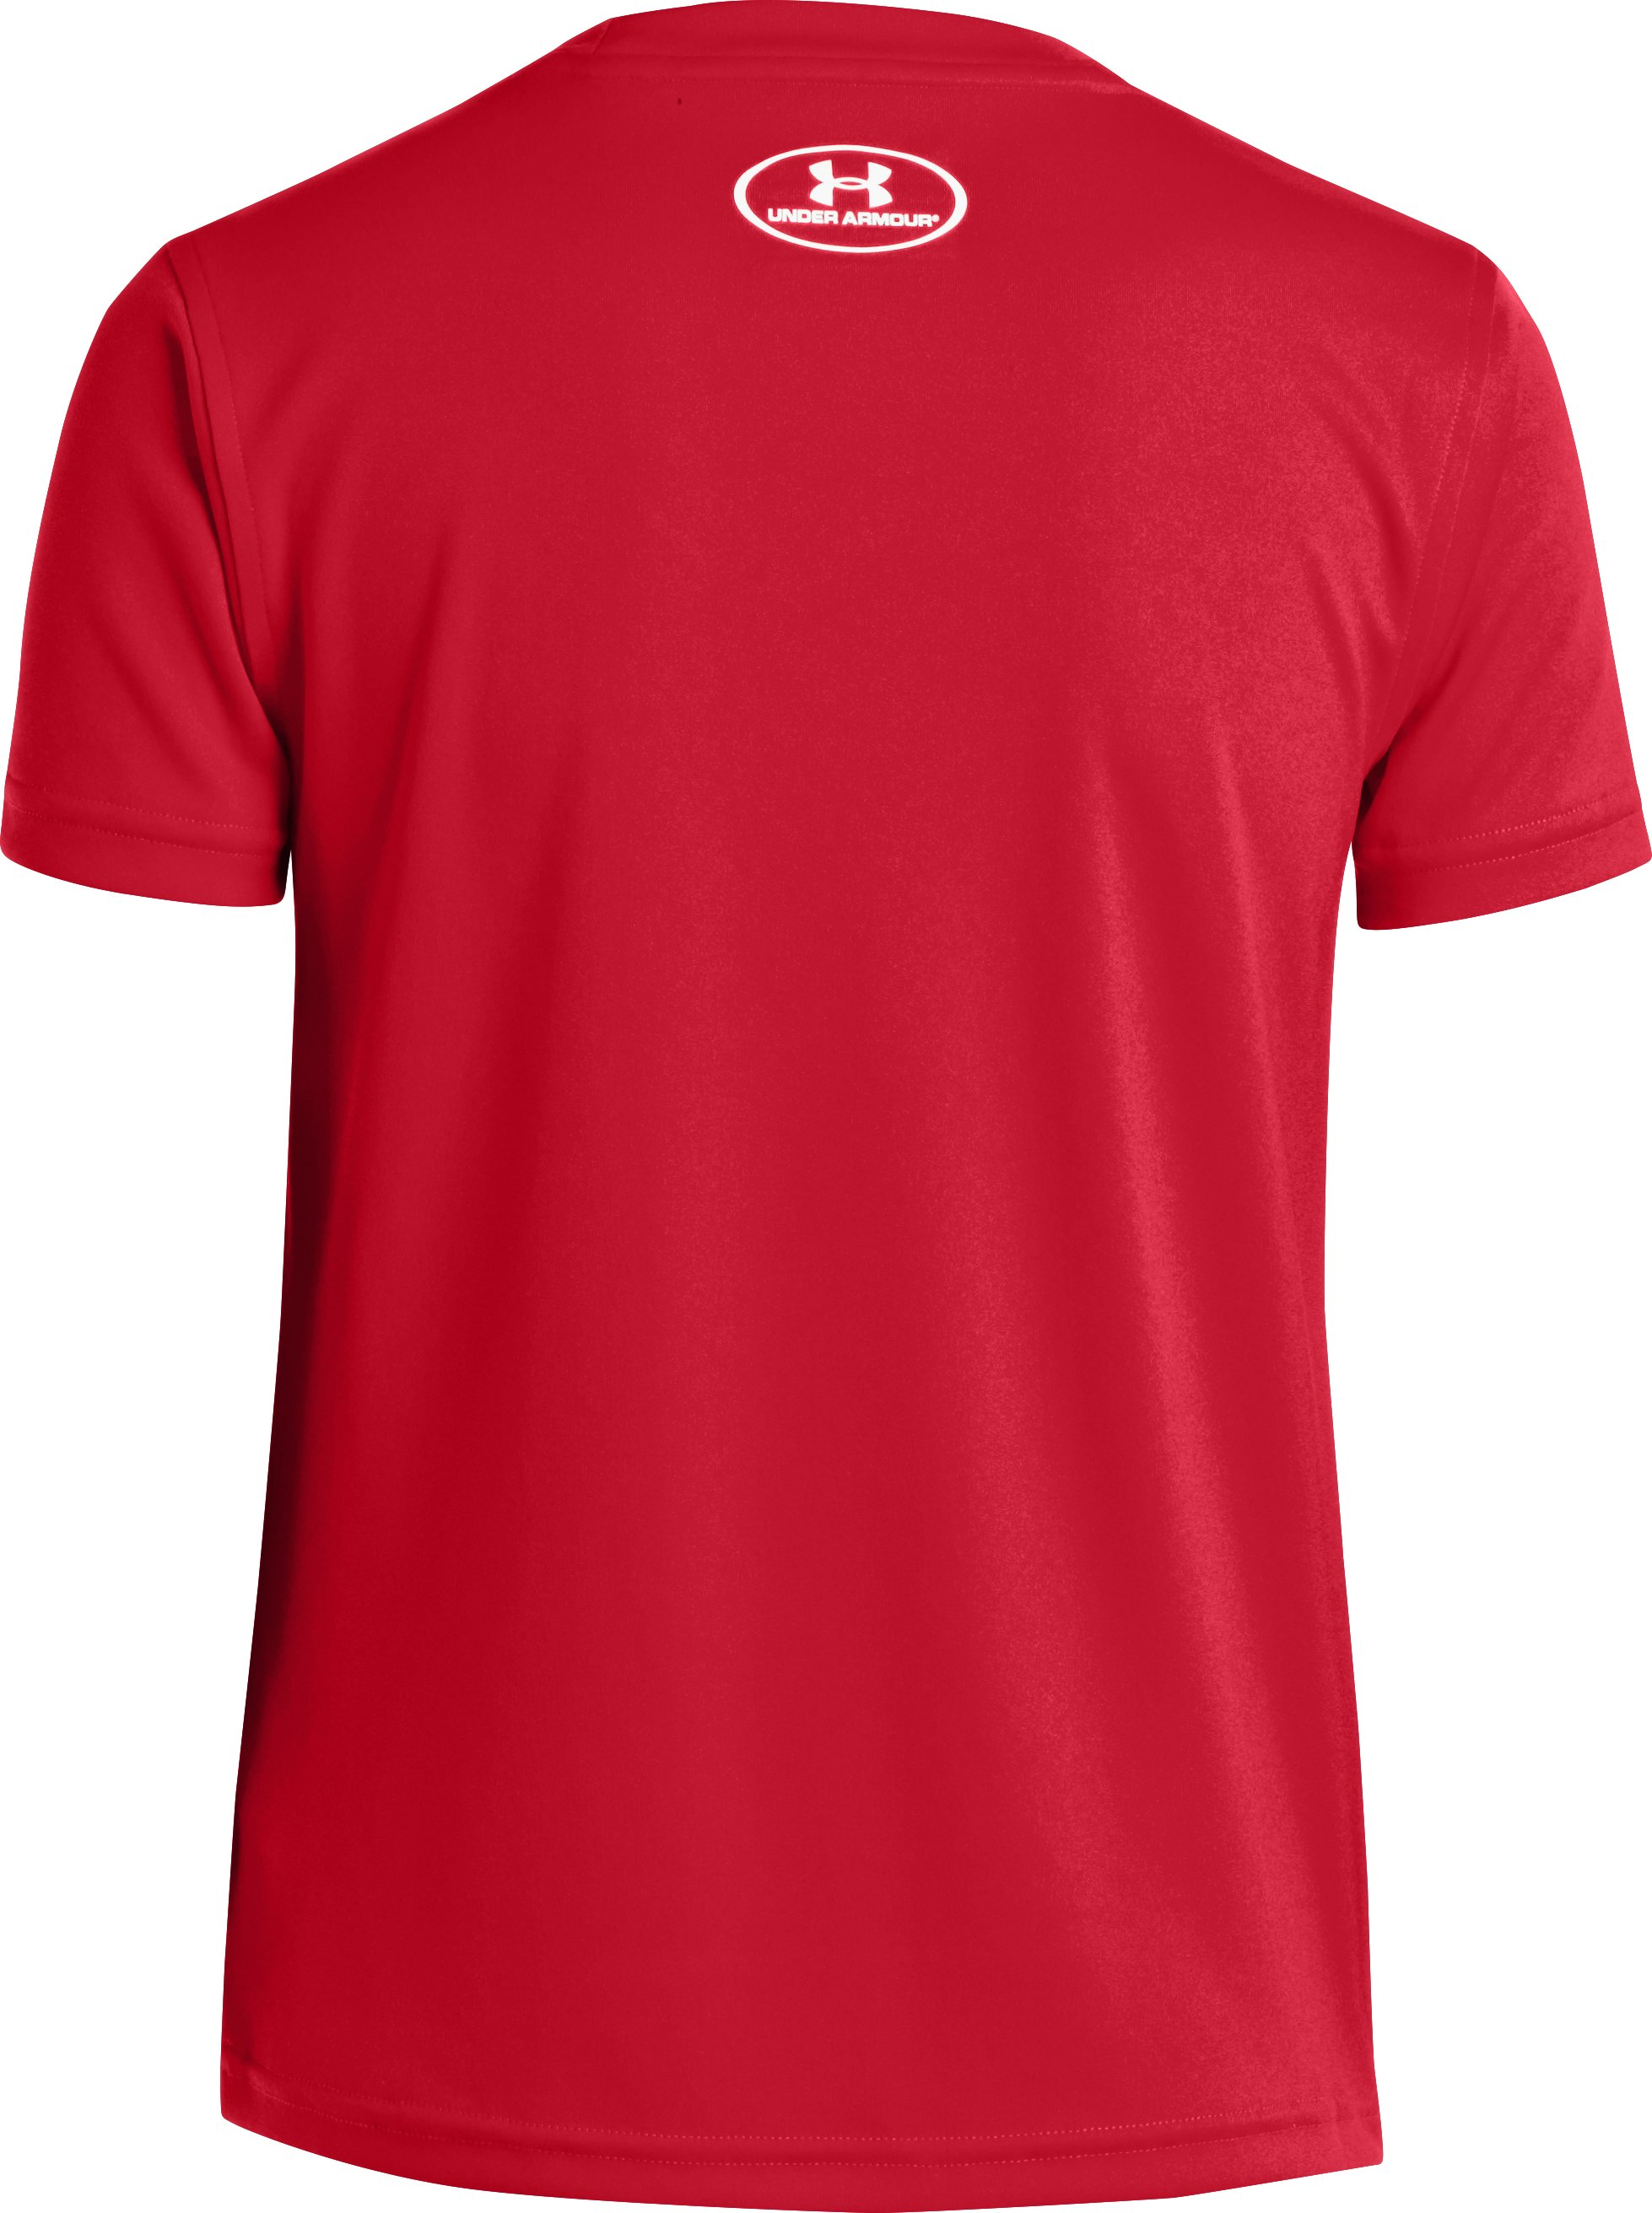 Boys' UA Show Me Sweat Graphic T-Shirt, Red